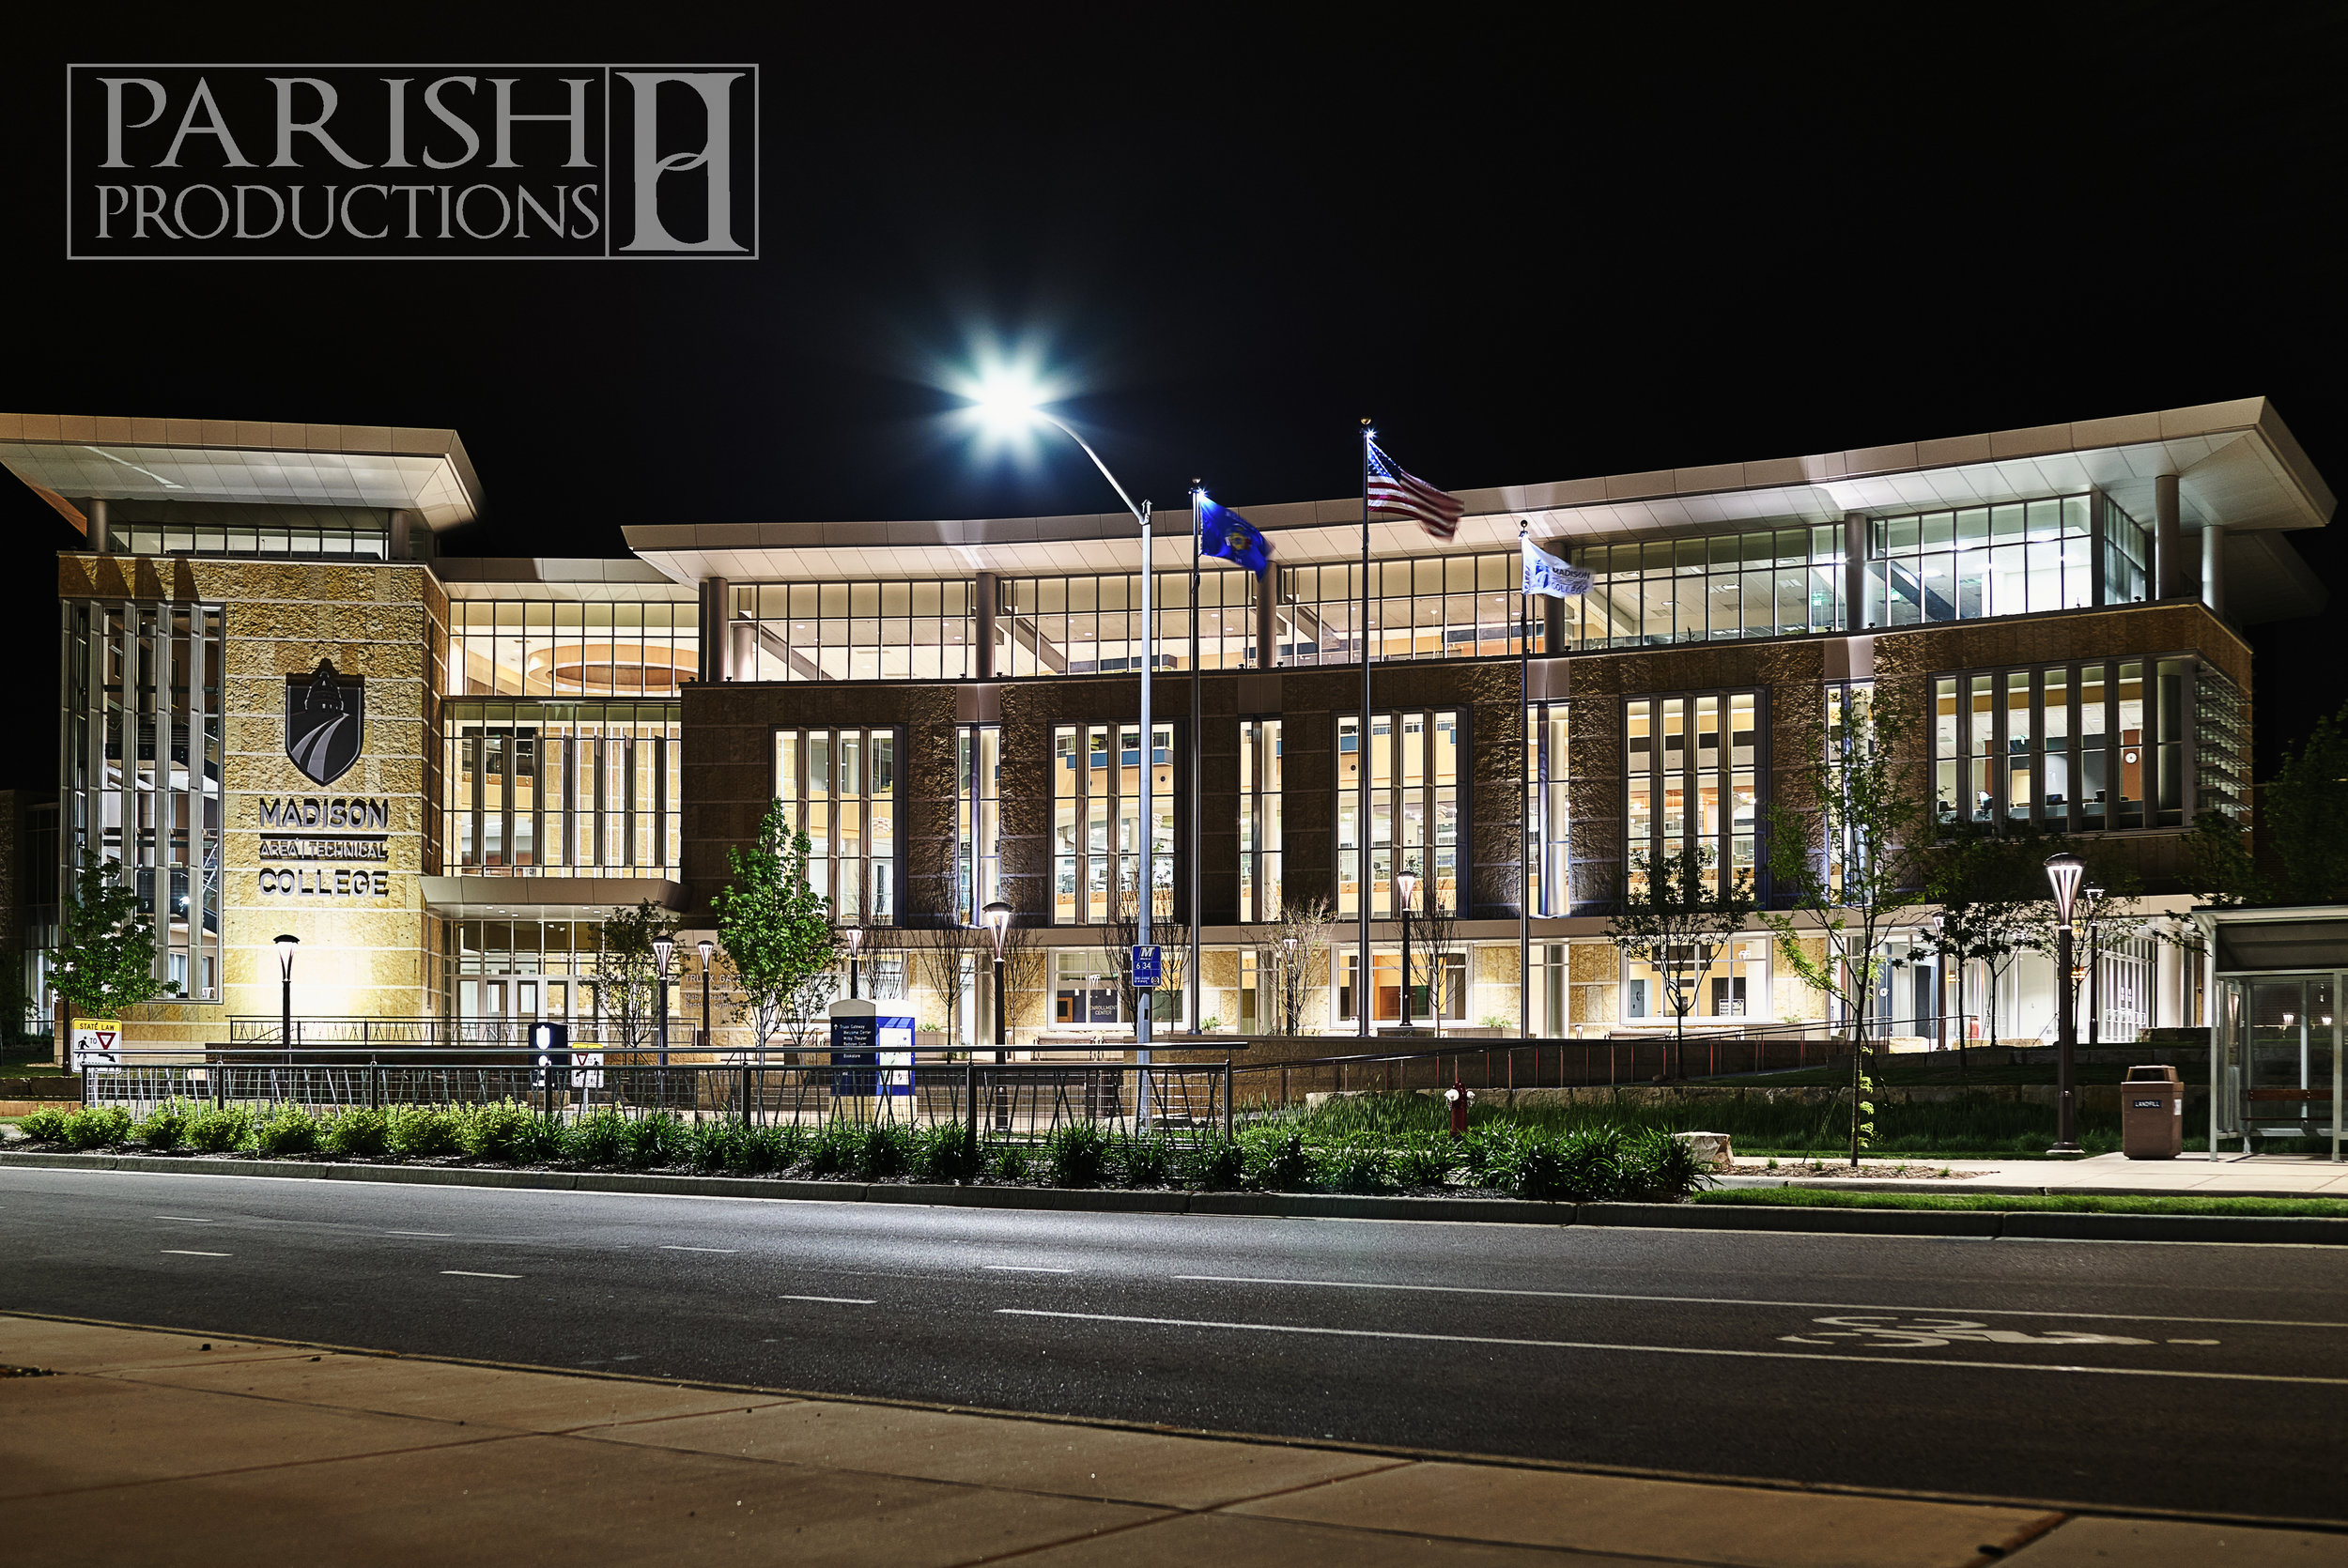 Architectural Photography - Business / Real Estate / Interior / Farm / Aerial / Commercial / Private...